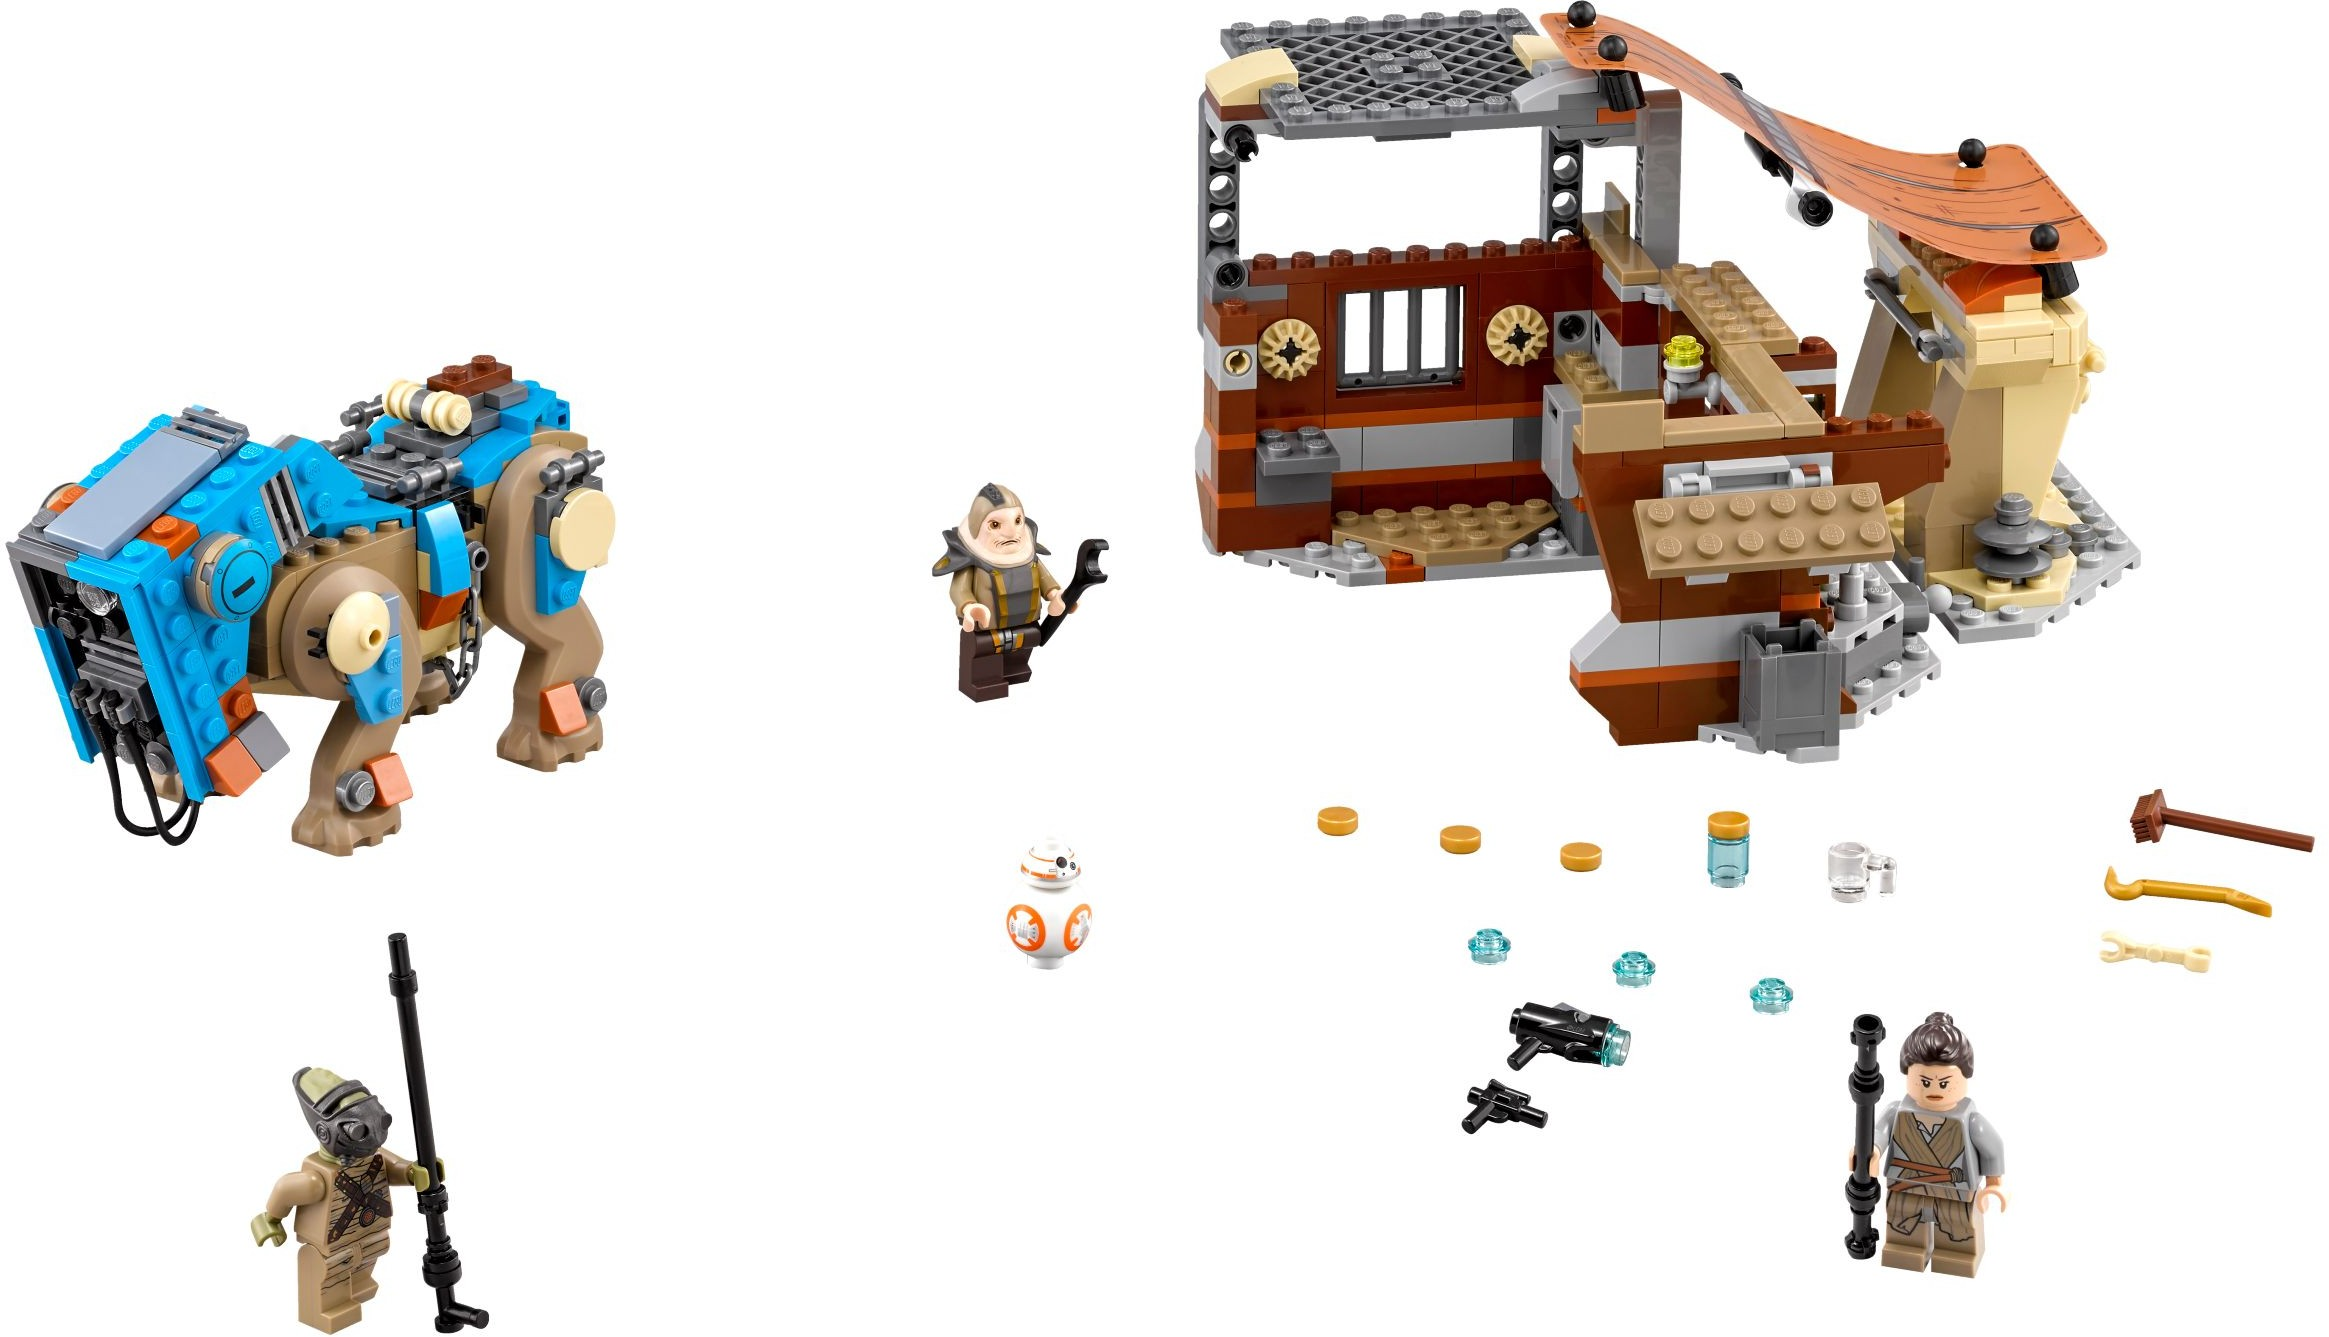 http://images.brickset.com/sets/large/75148-1.jpg?201604090635